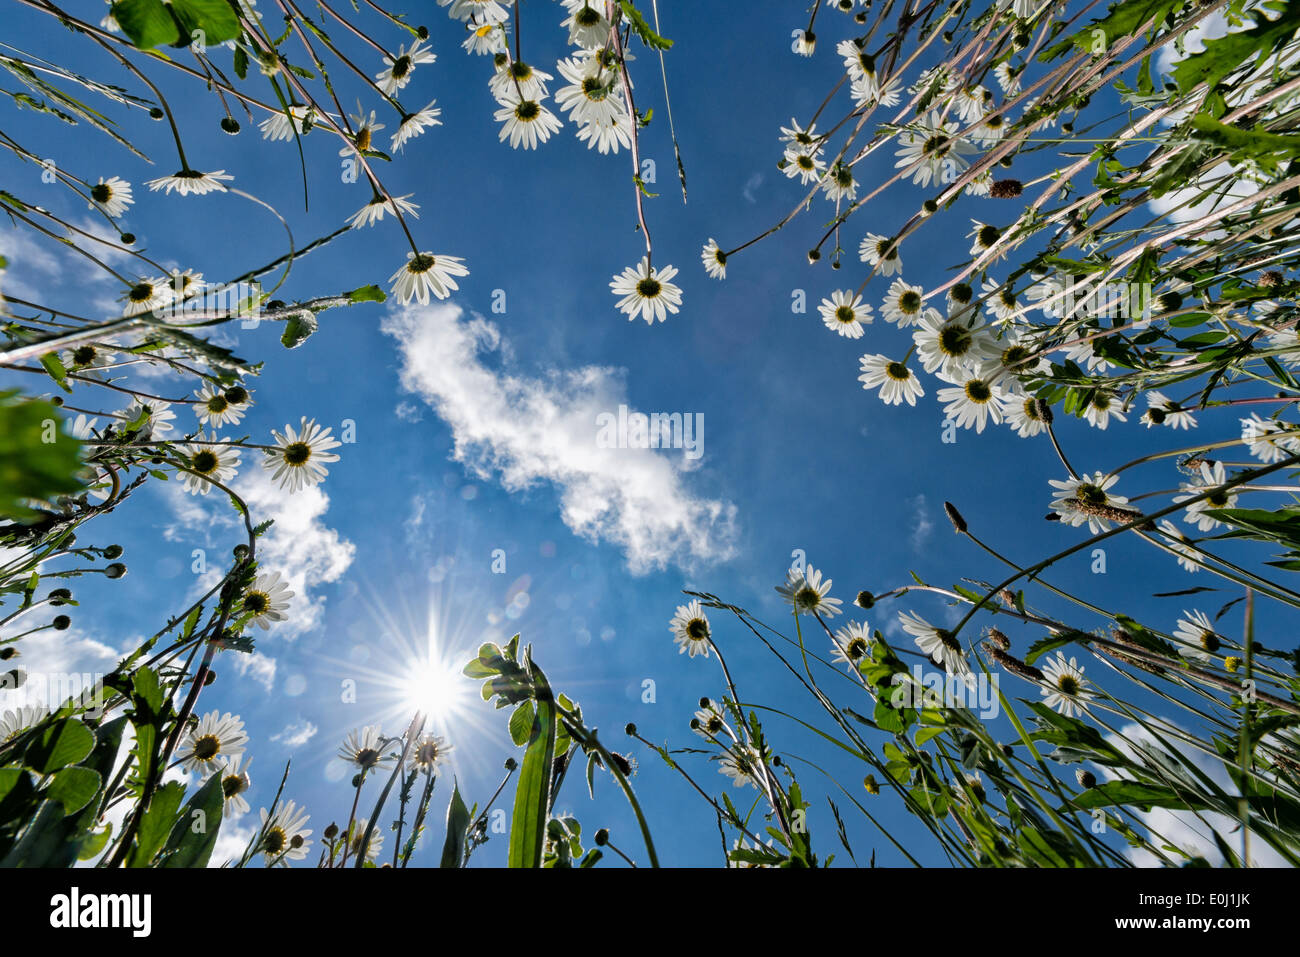 Longstanton, Cambridgeshire UK 14th May 2014. Ox eye daisies burst into bloom as warm sunny weather returns to the UK. The wild plants self-seed  and form a mass of white flowers at the side of the road in the village of Longstanton covering what would otherwise be bare ground. Credit Julian Eales/Alamy Live News Stock Photo